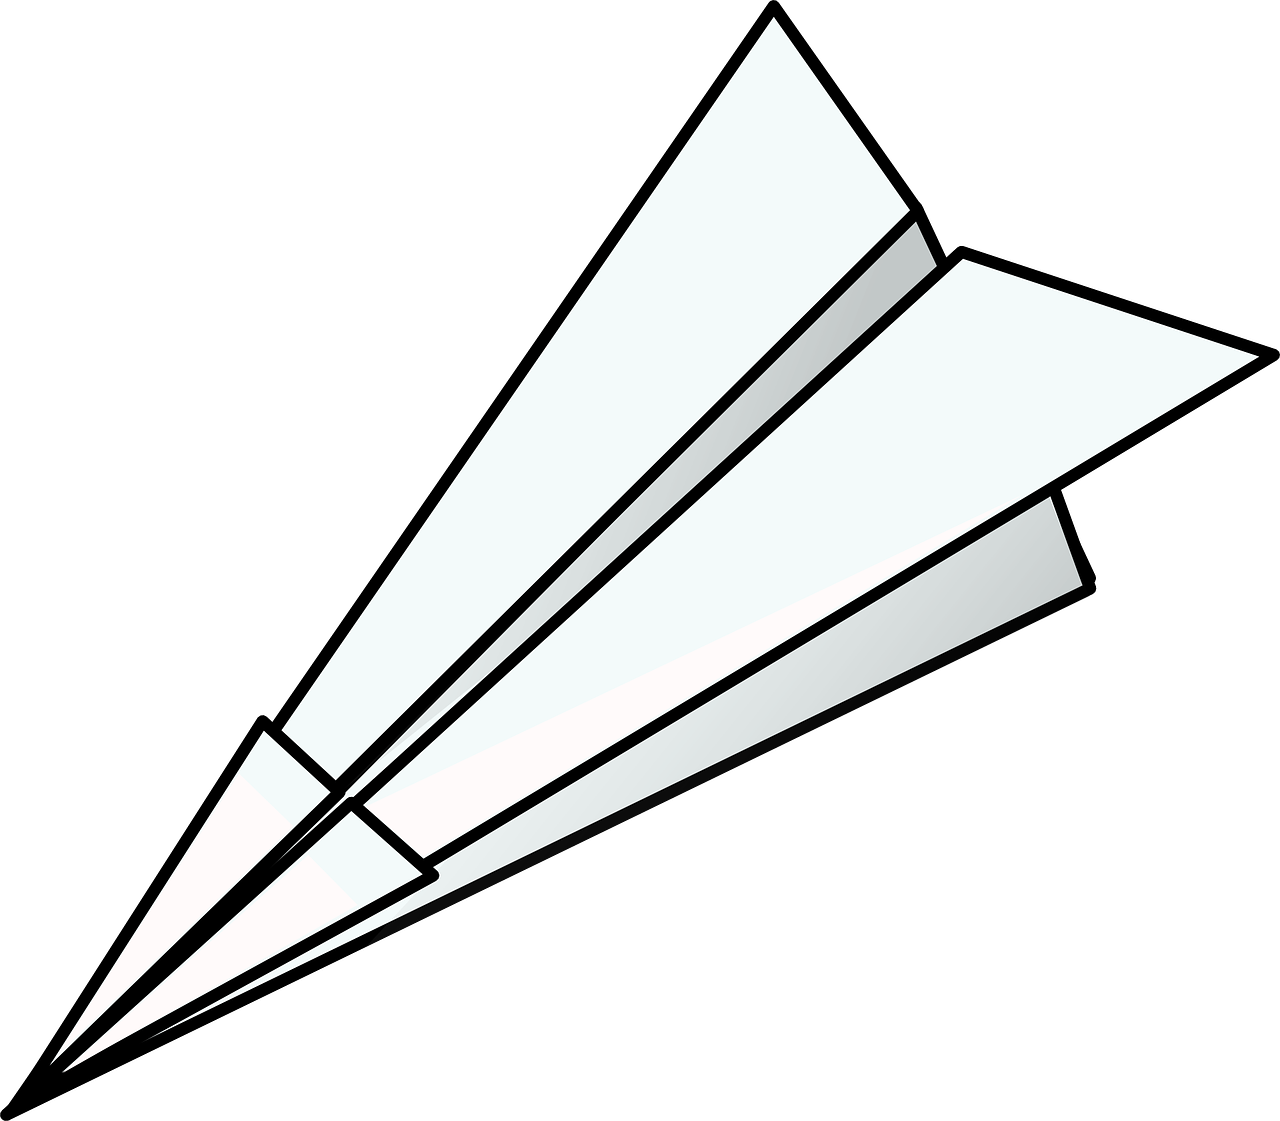 origami paper airplane free photo